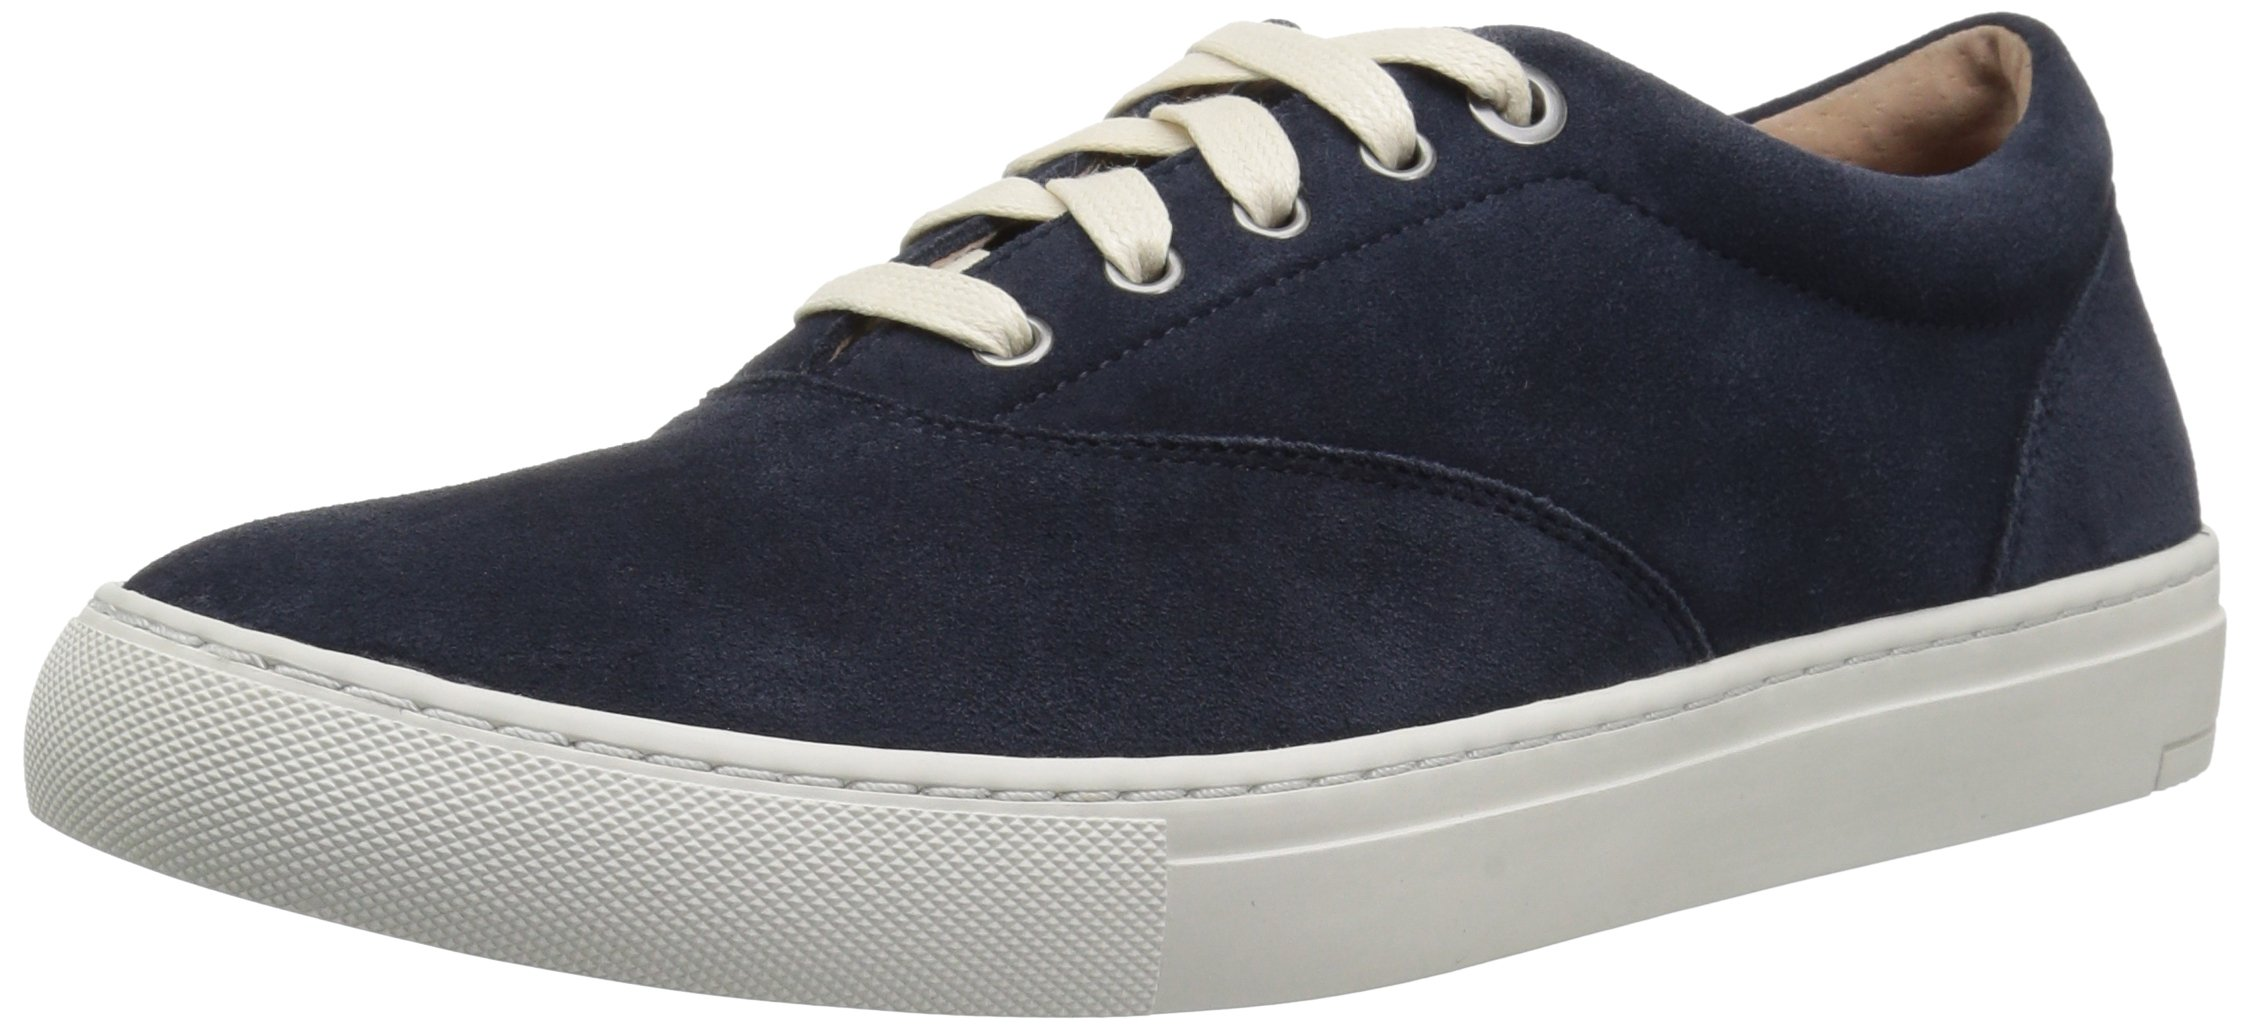 206 Collective Men's Olympic Casual Lace-up Sneaker, Navy Suede, 9.5 D US